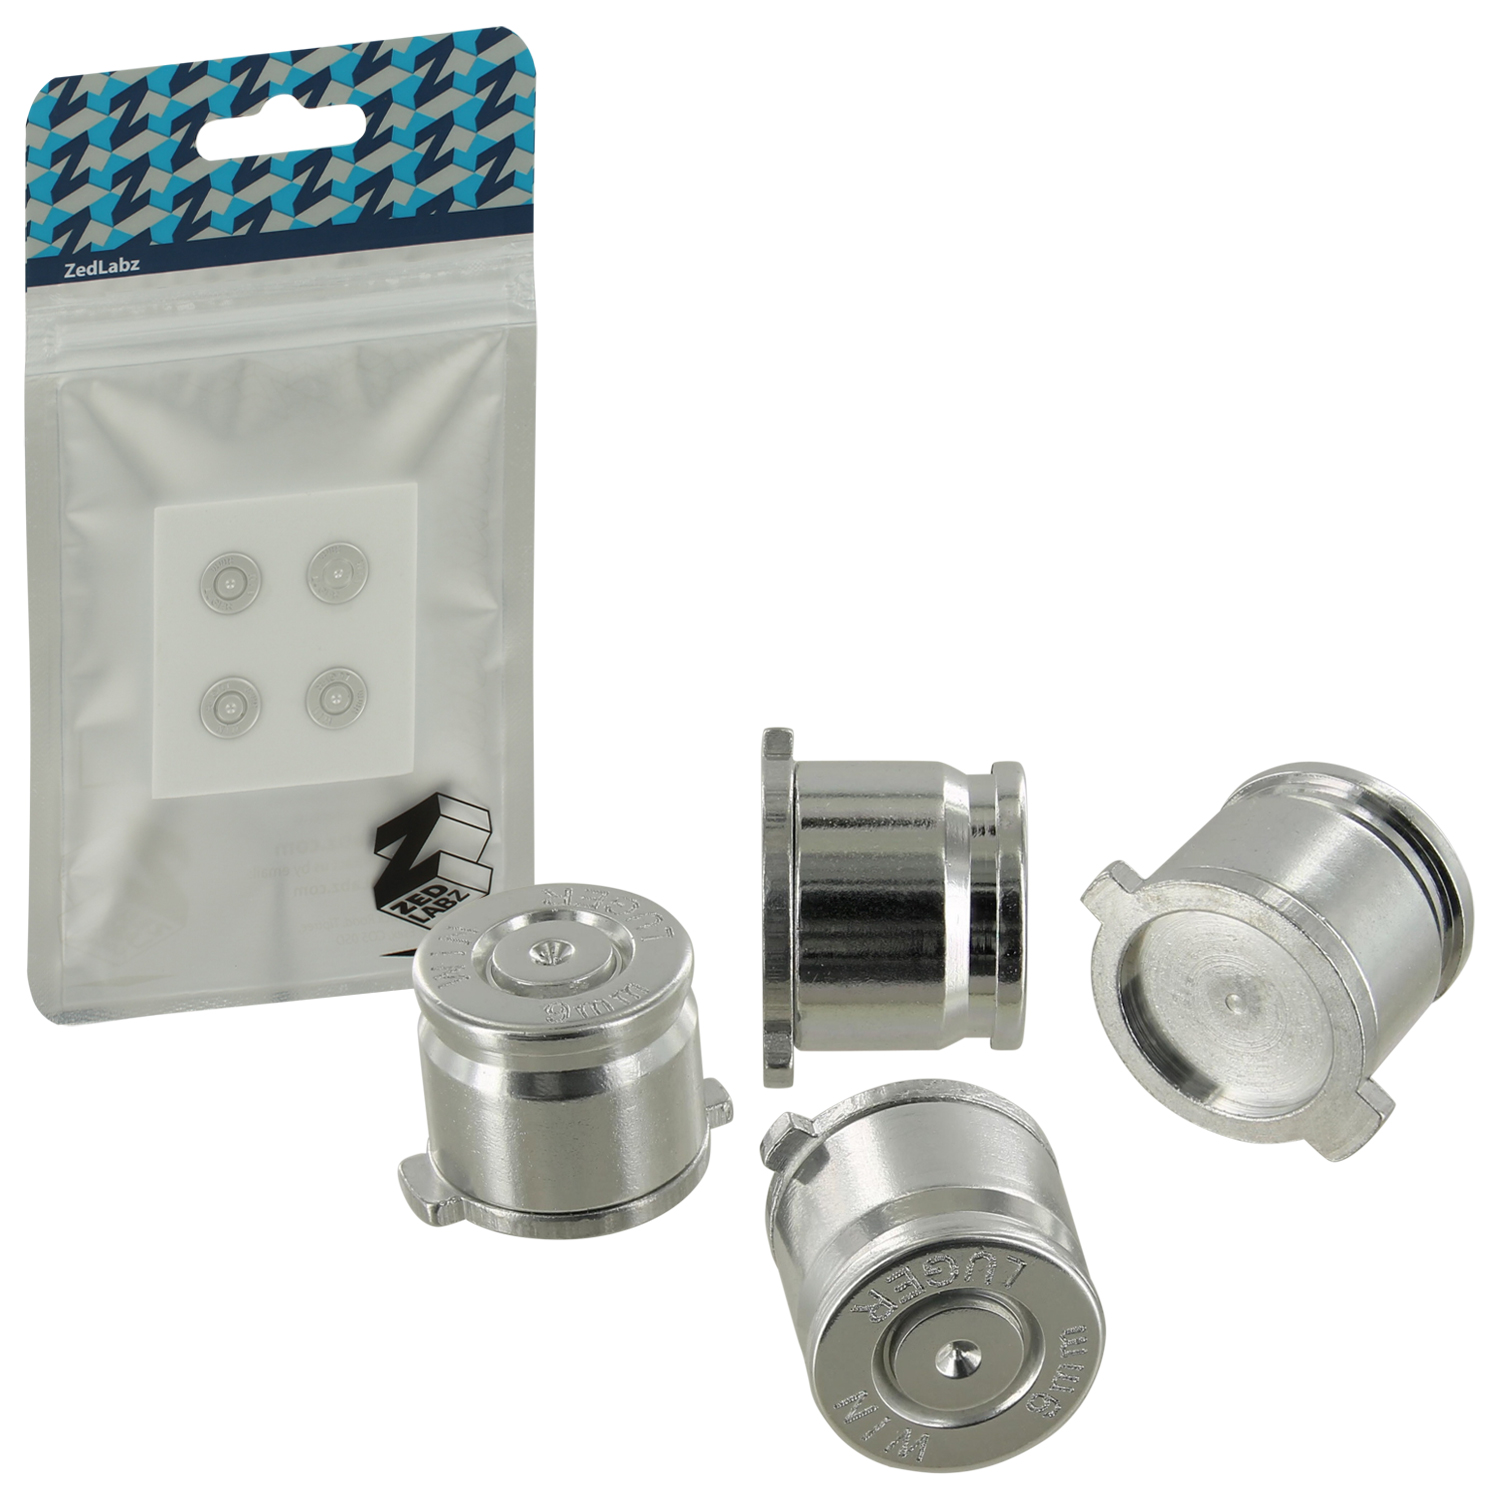 Zedlabz Aluminum Metal Action Bullet Button Set For Sony Ps4 Controllers - Silver